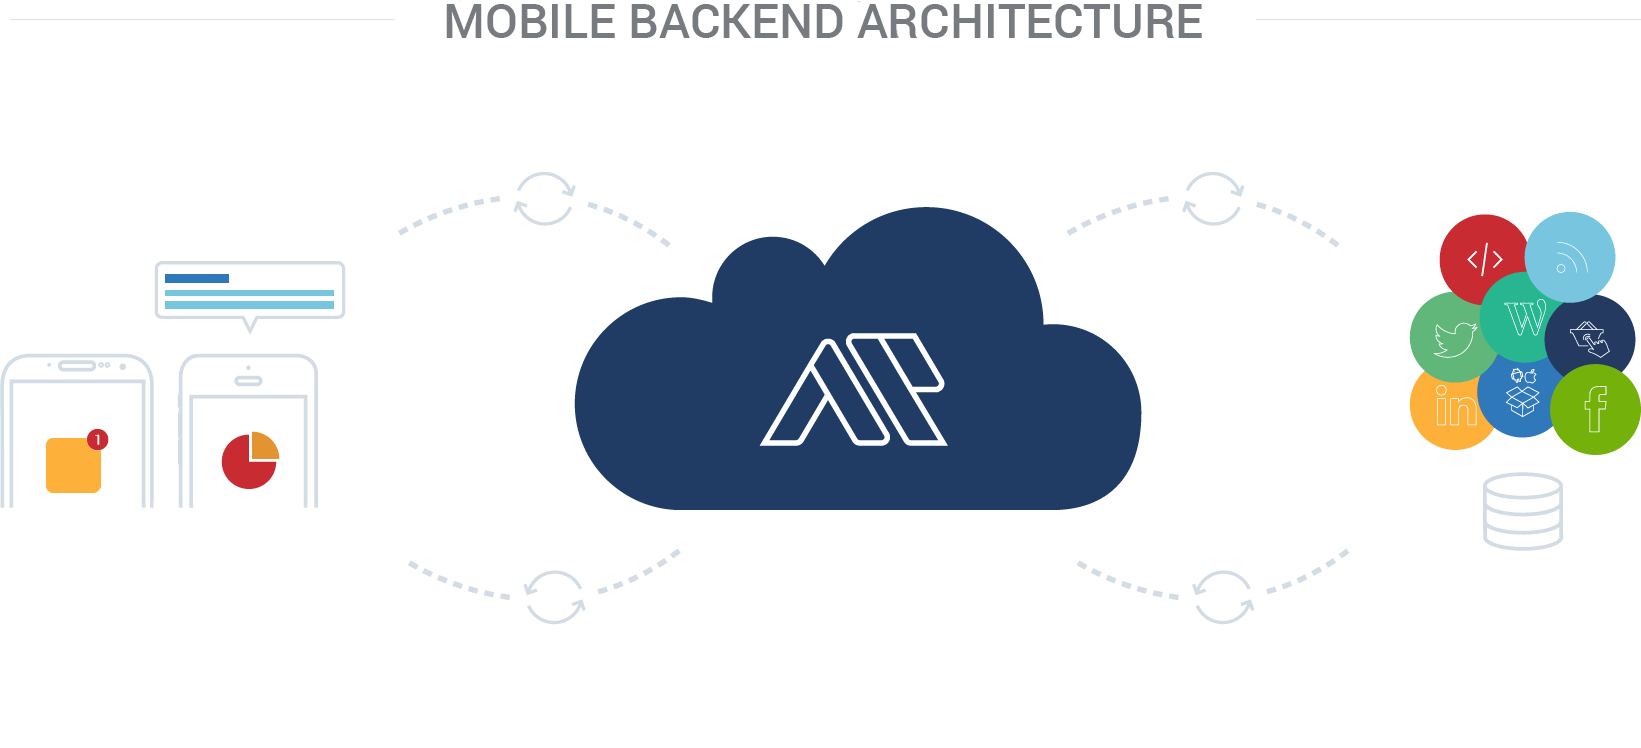 An illustration of mobile backed architecture